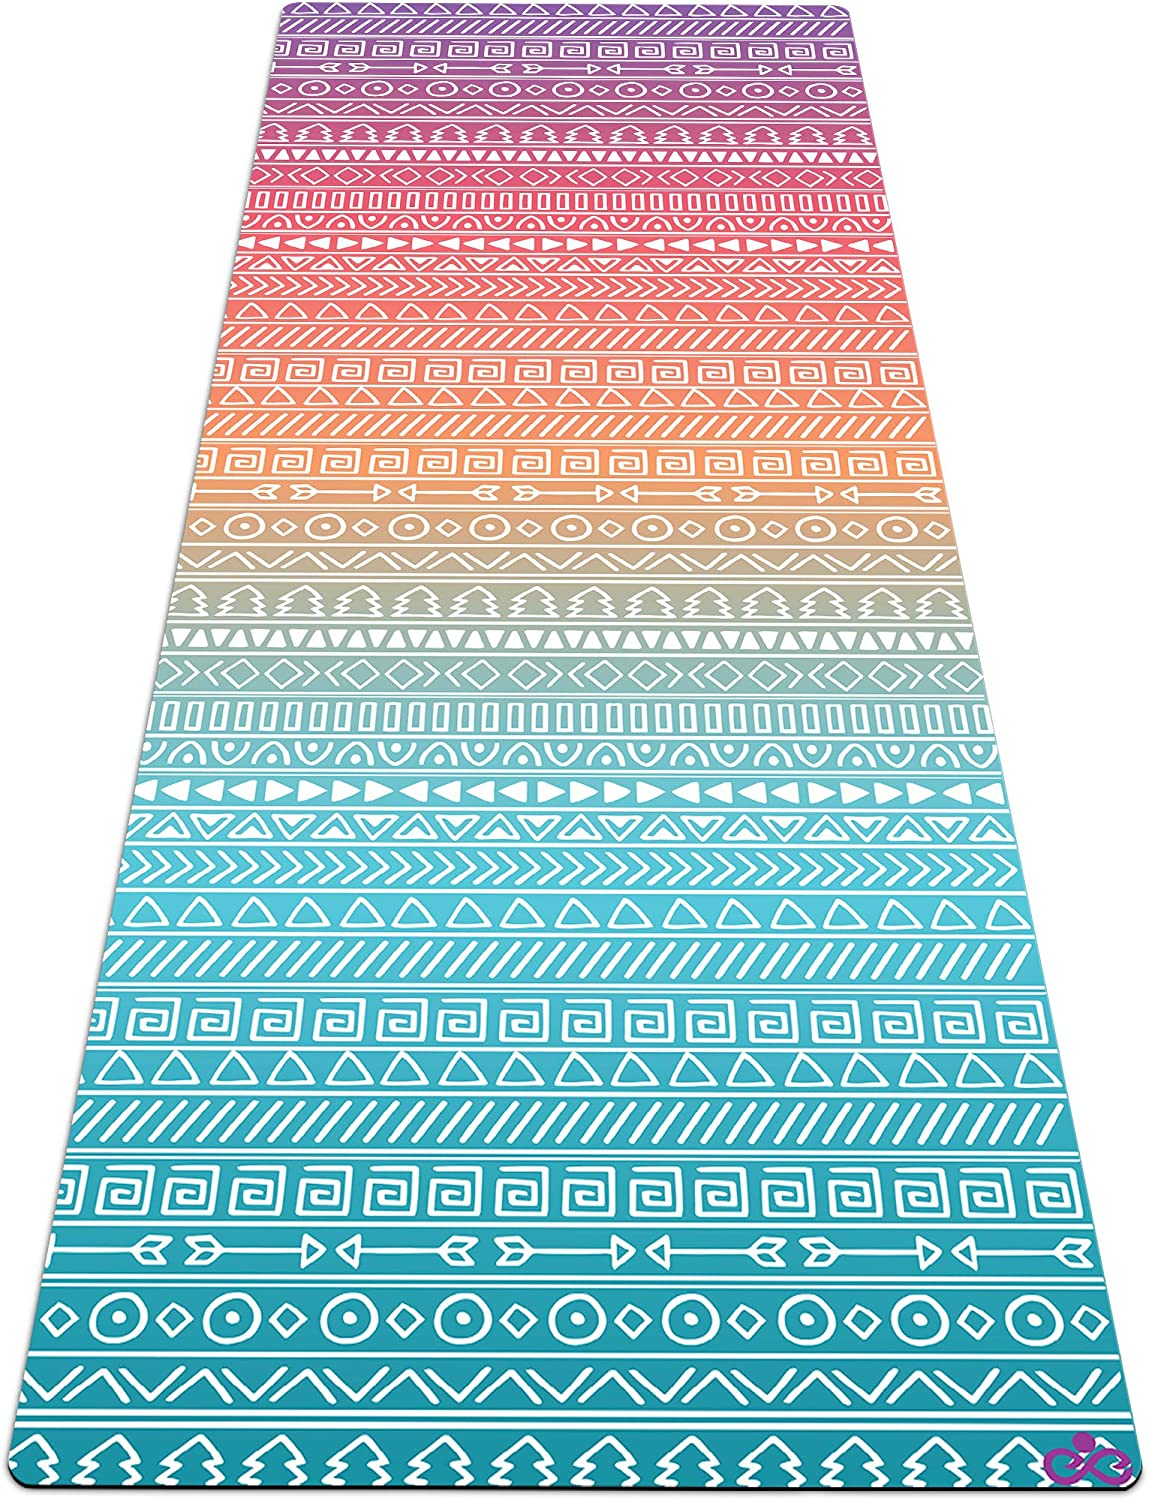 Reetual, The Yoga Mat That Adores Sweat | Premium Hot Yoga Mat Non Slip Towel Combo - with Carrying Strap | Eco Friendly | Designed for Bikram, Hot ...